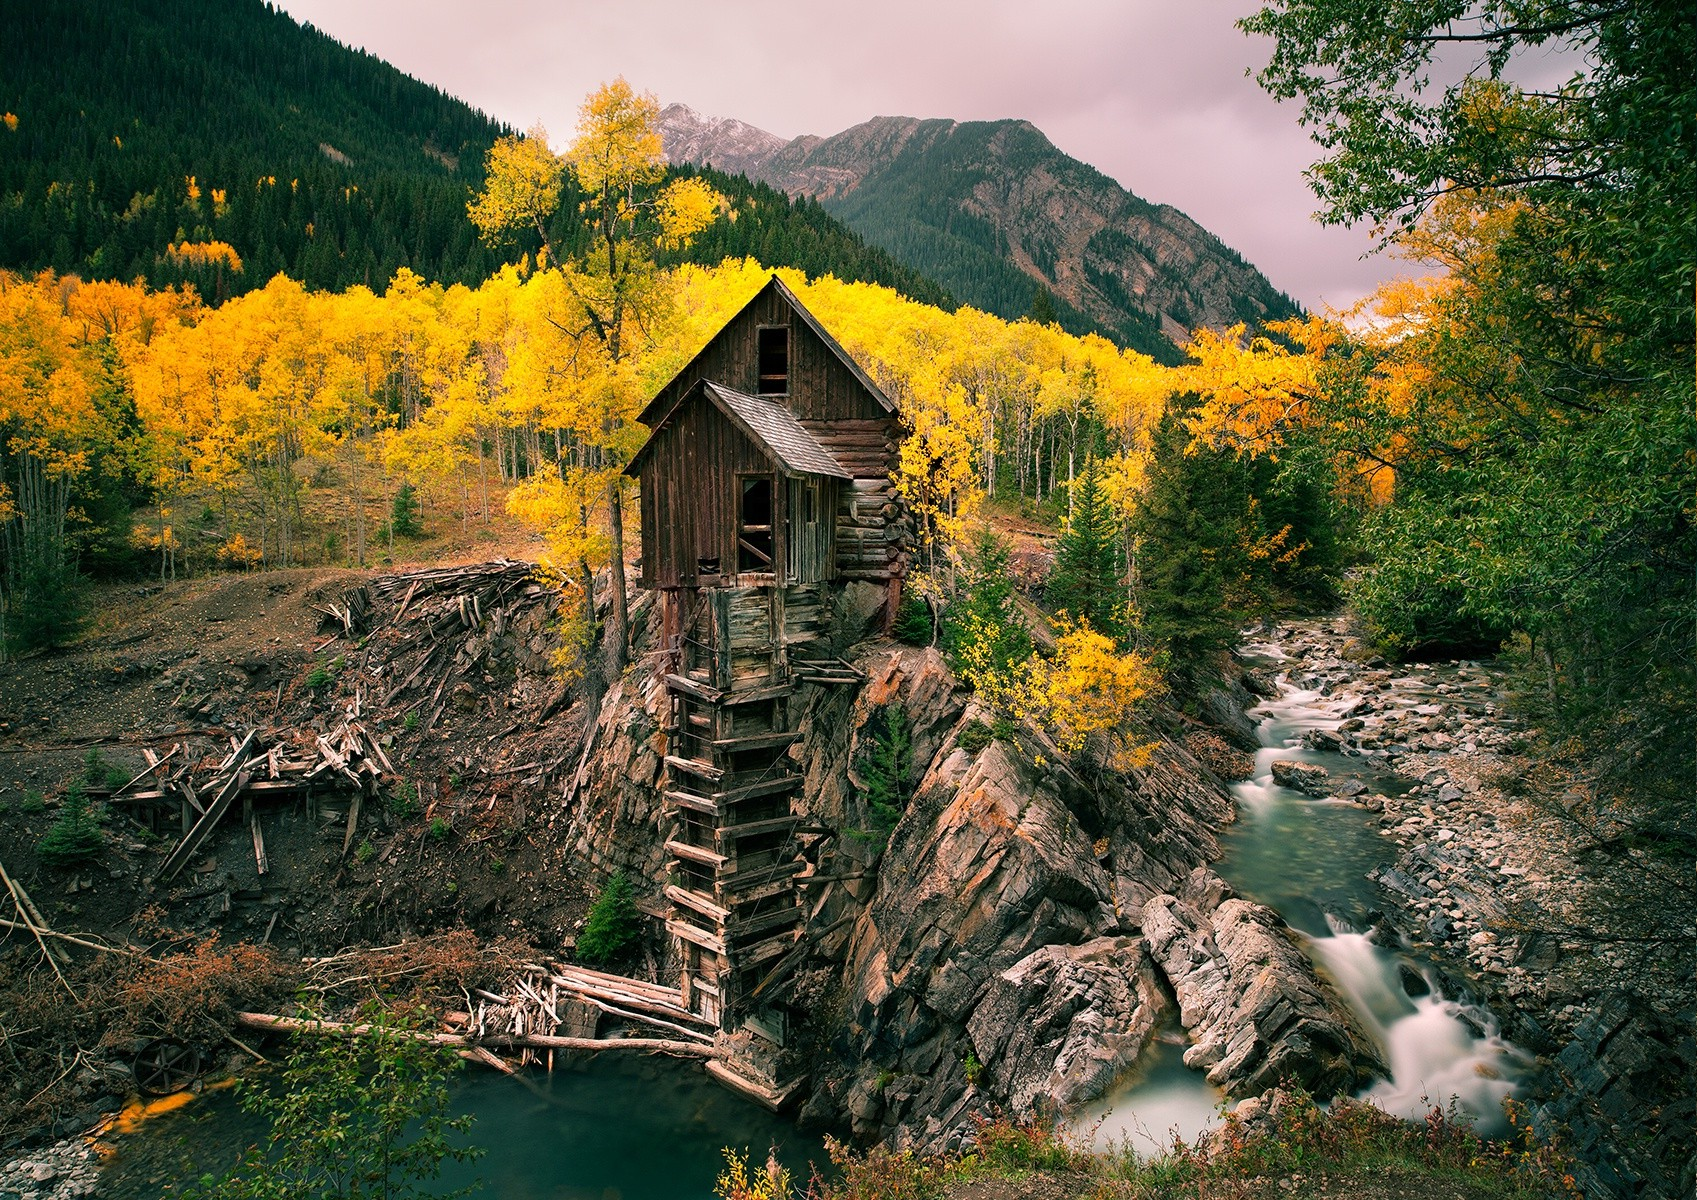 The Fall Movie Wallpaper Mill Fall River Mining Forest Mountain Trees Water